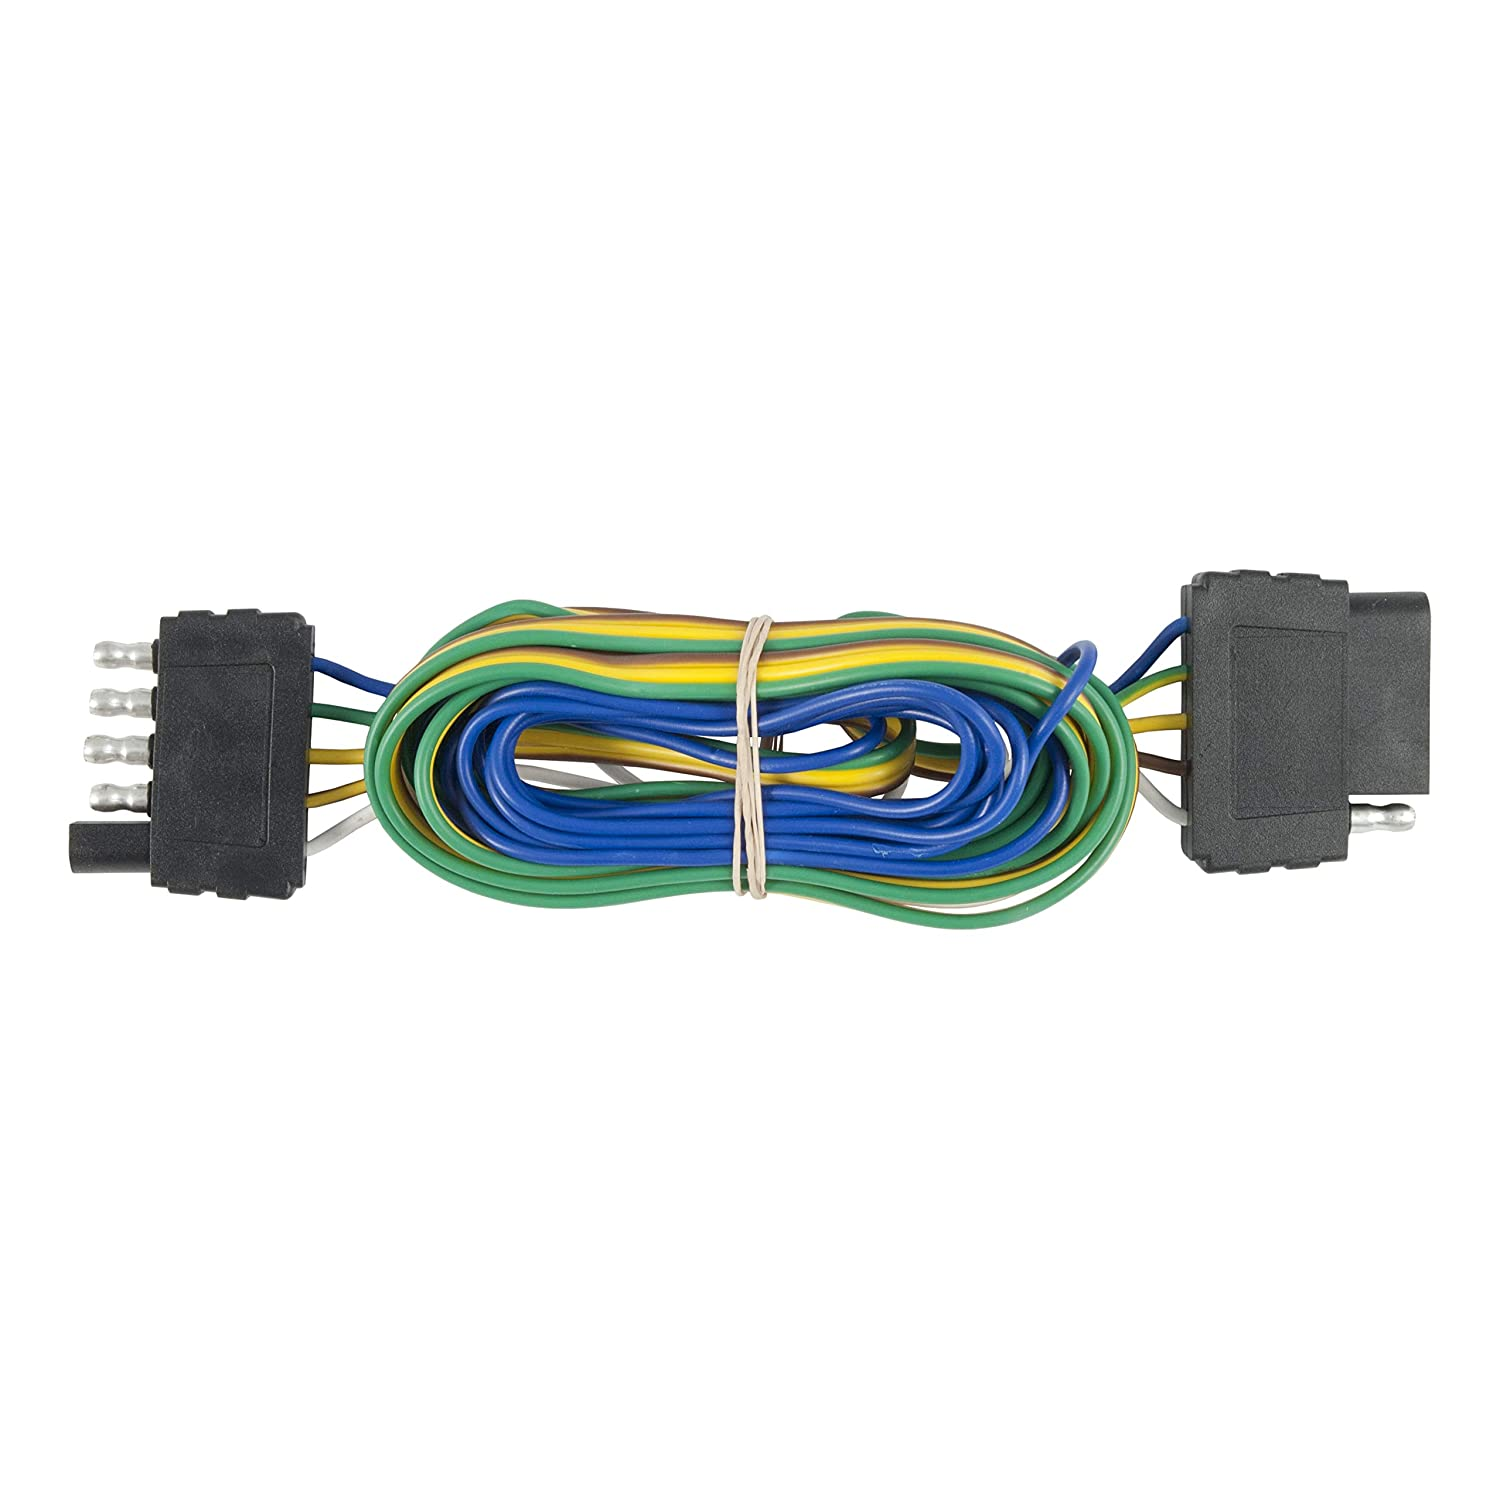 curt 58550 vehicle side and trailer side 5 pin trailer wiring harness with 72 inch wires, 5 wire trailer wiring 5 Pin Wire Harness Kia Home Link